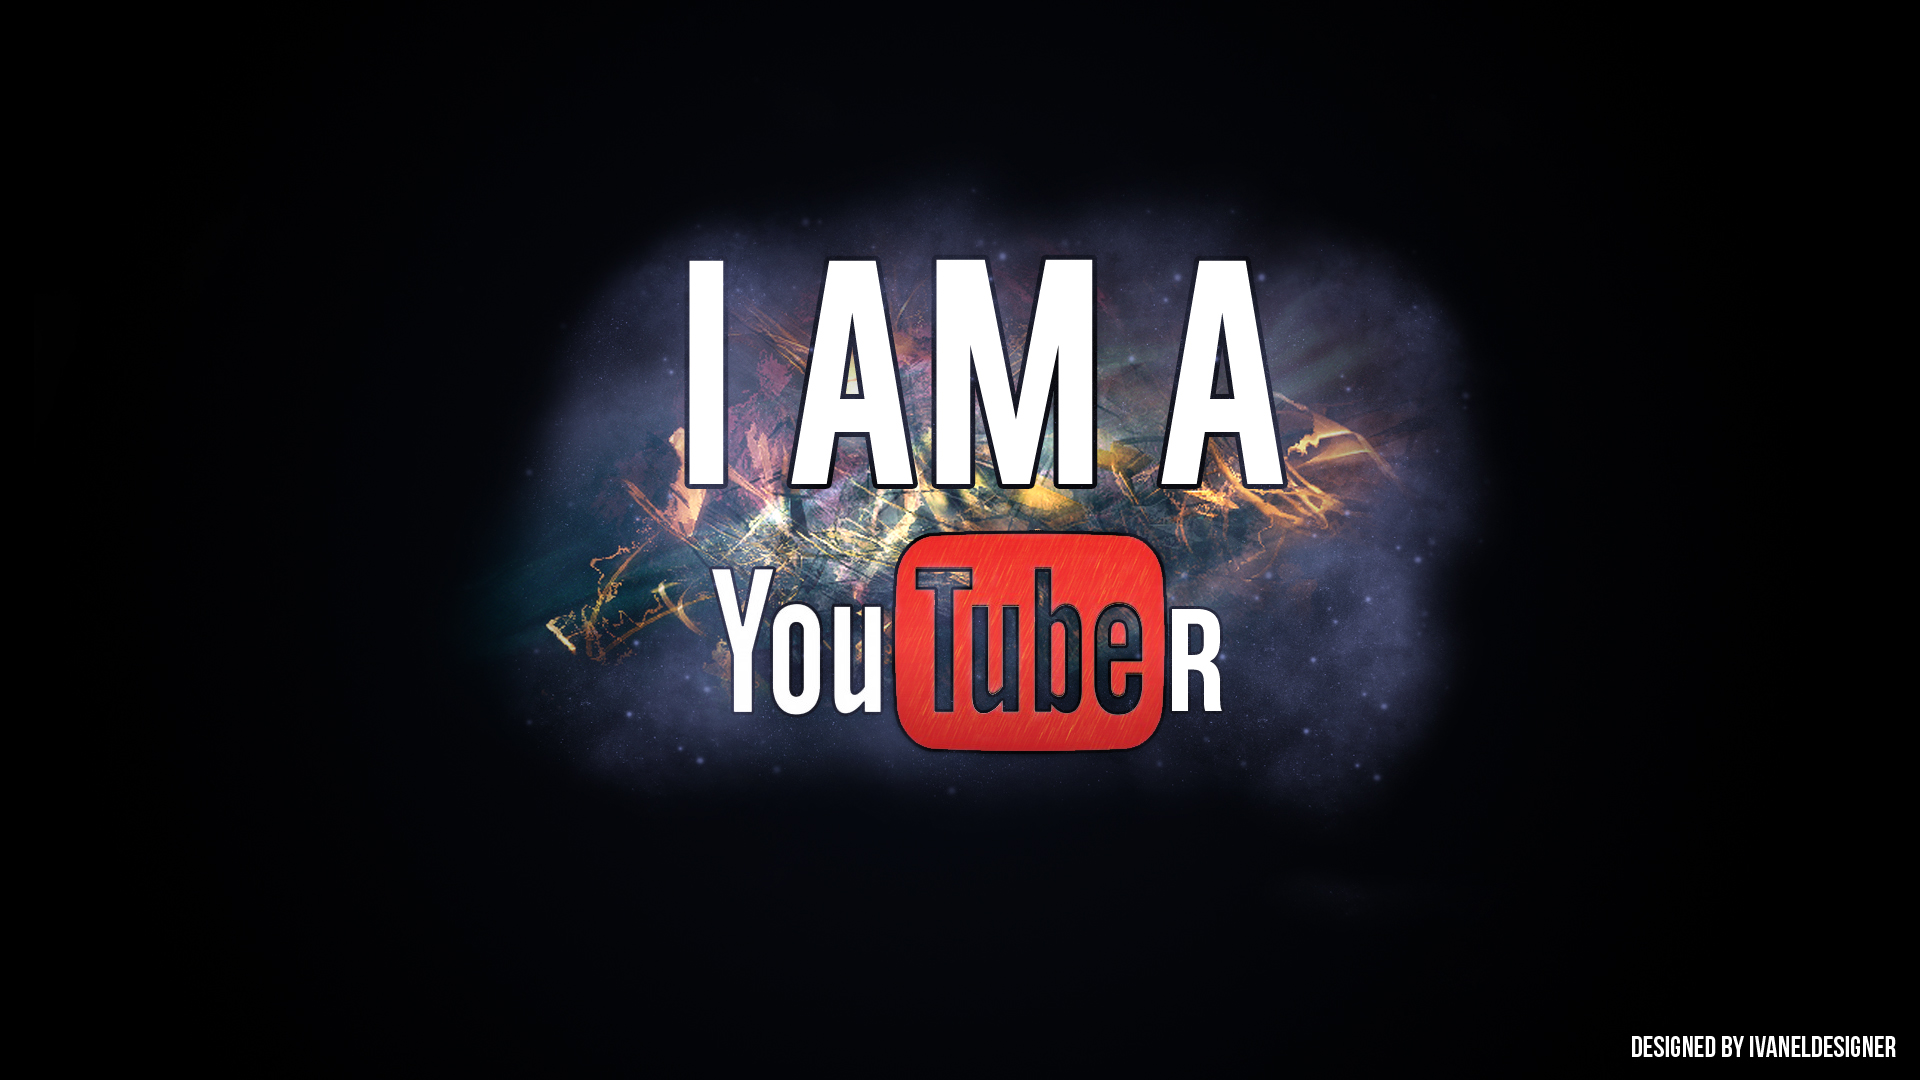 Wallpaper IM A YOUTUBER by ivaneldeming 1920x1080